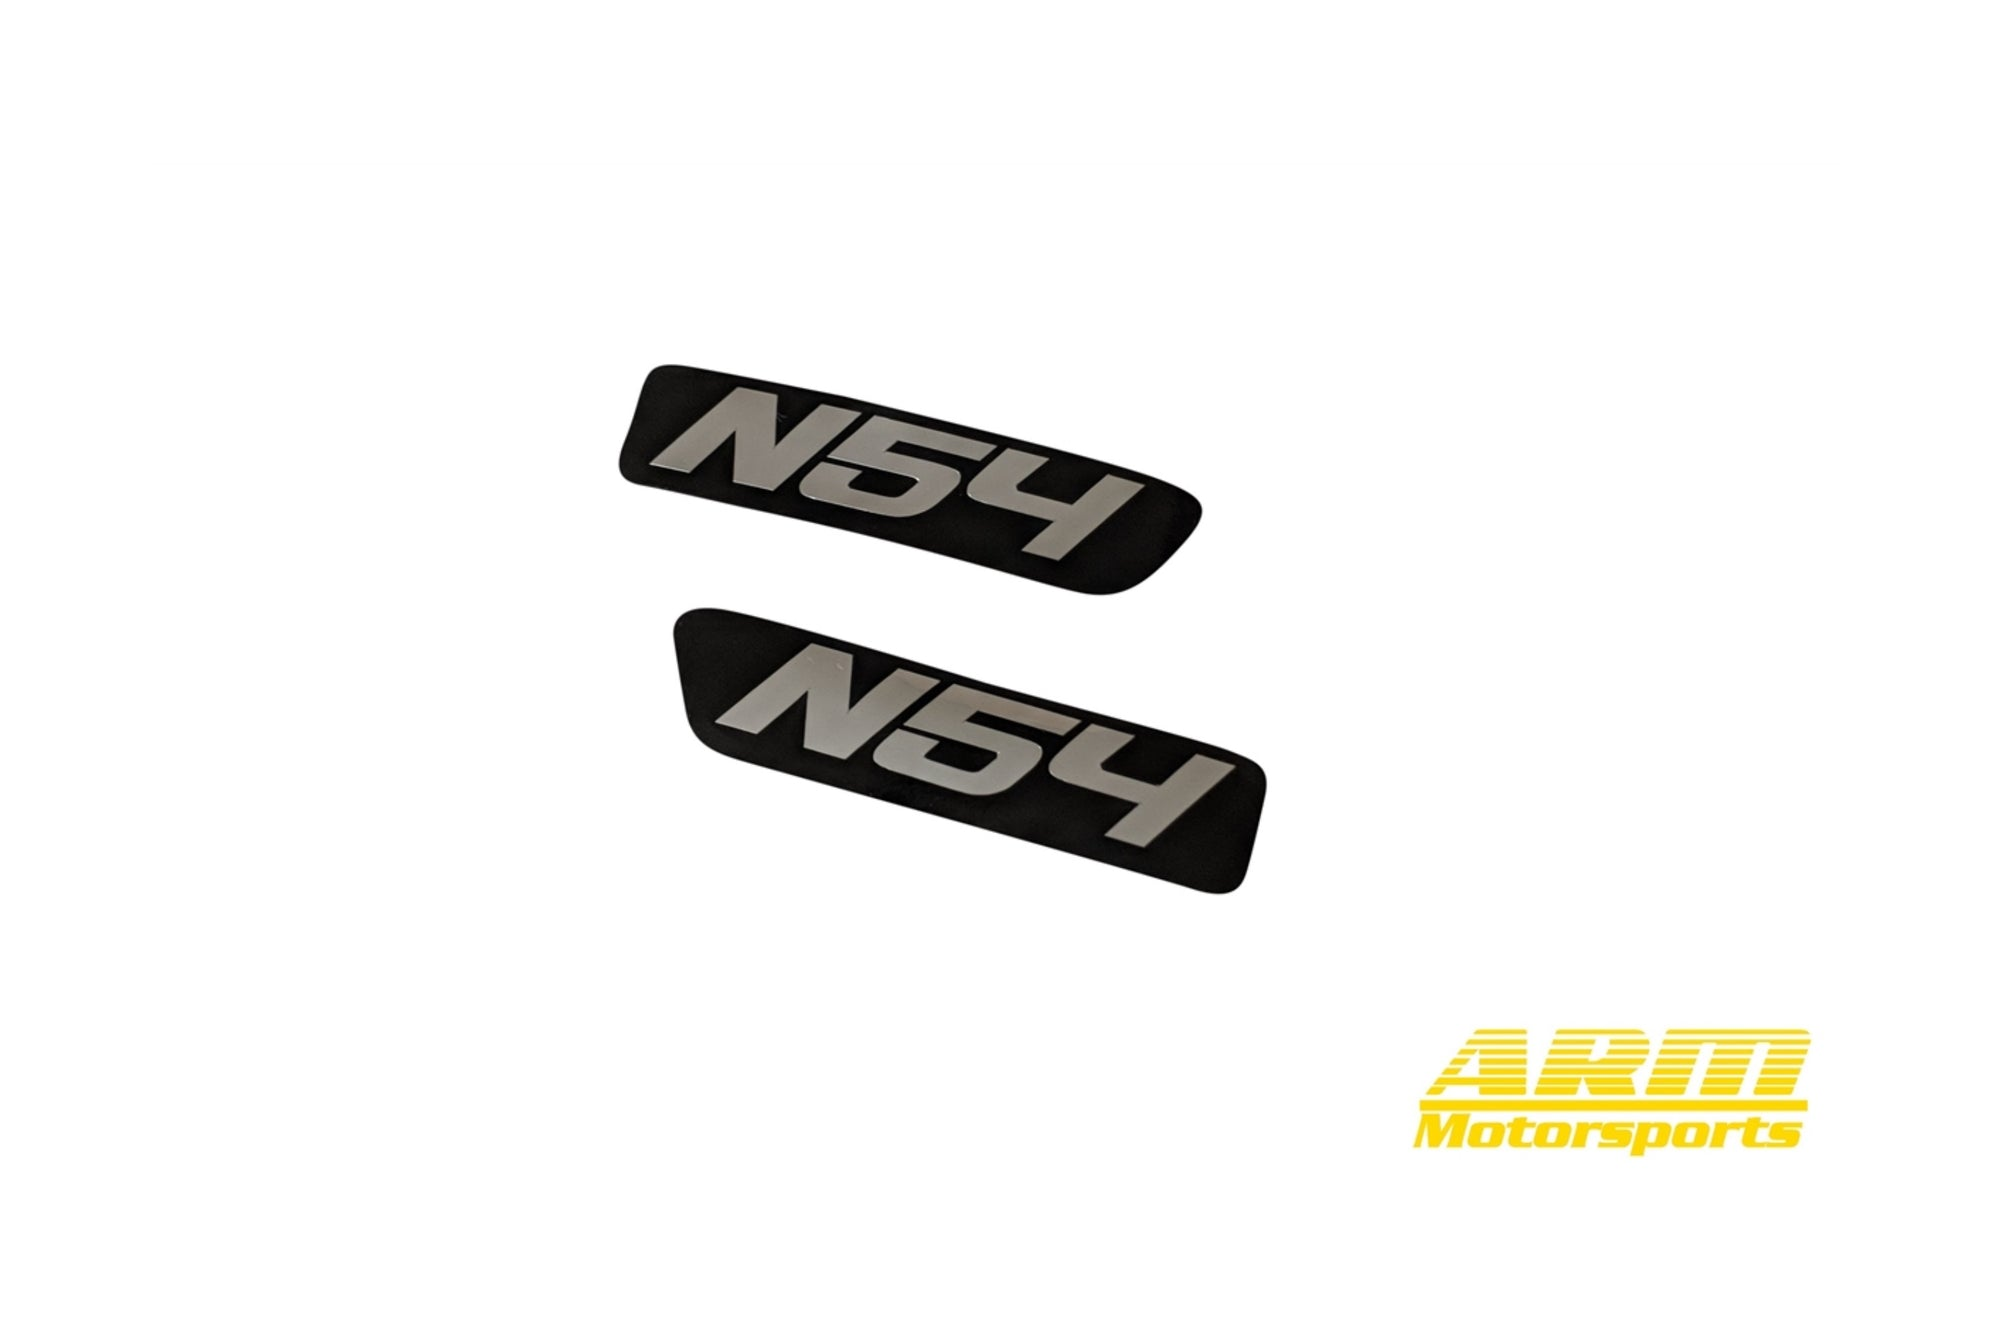 N54 FENDER DECALS - ARM Motorsports